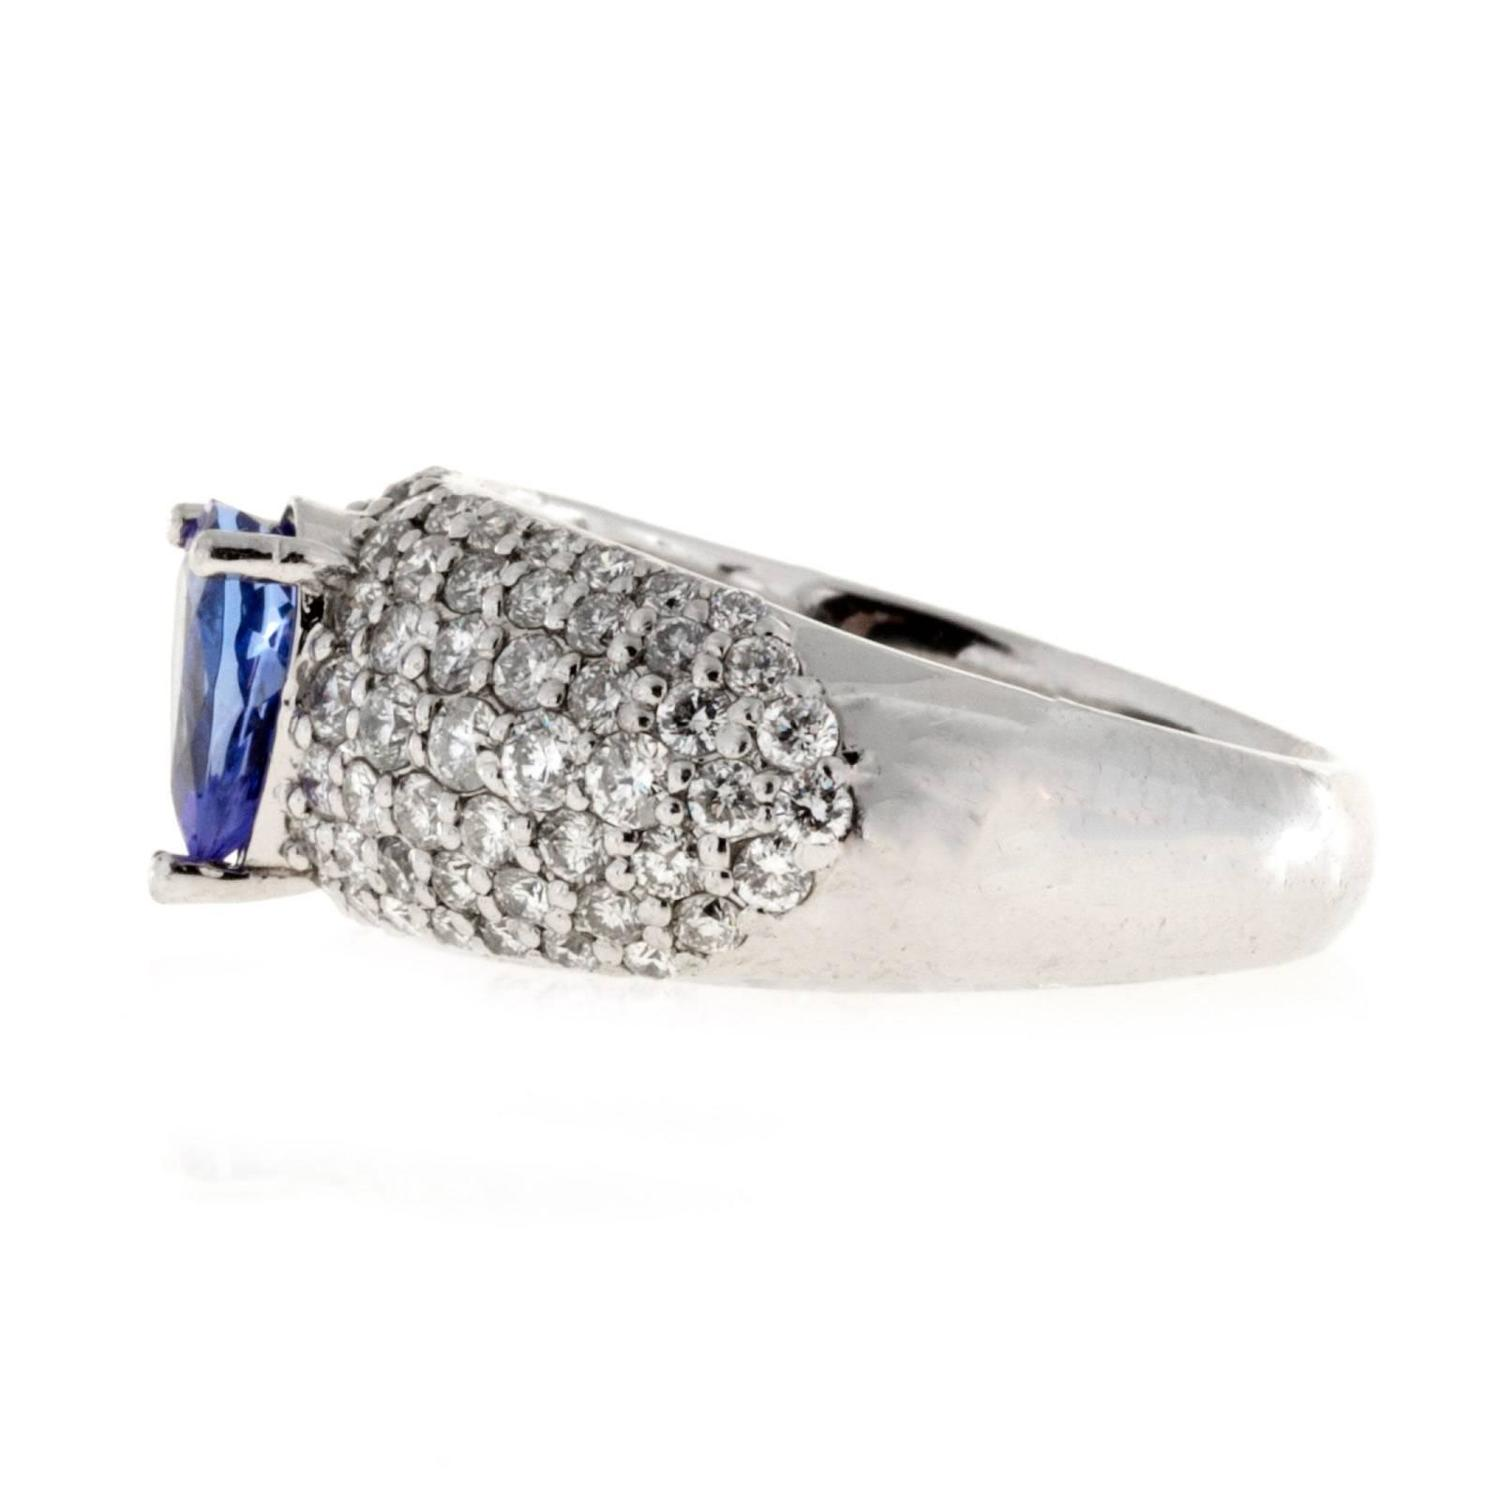 Pear Shaped Blue Tanzanite Bead Set Diamond Platinum Ring For Sale at 1stdibs